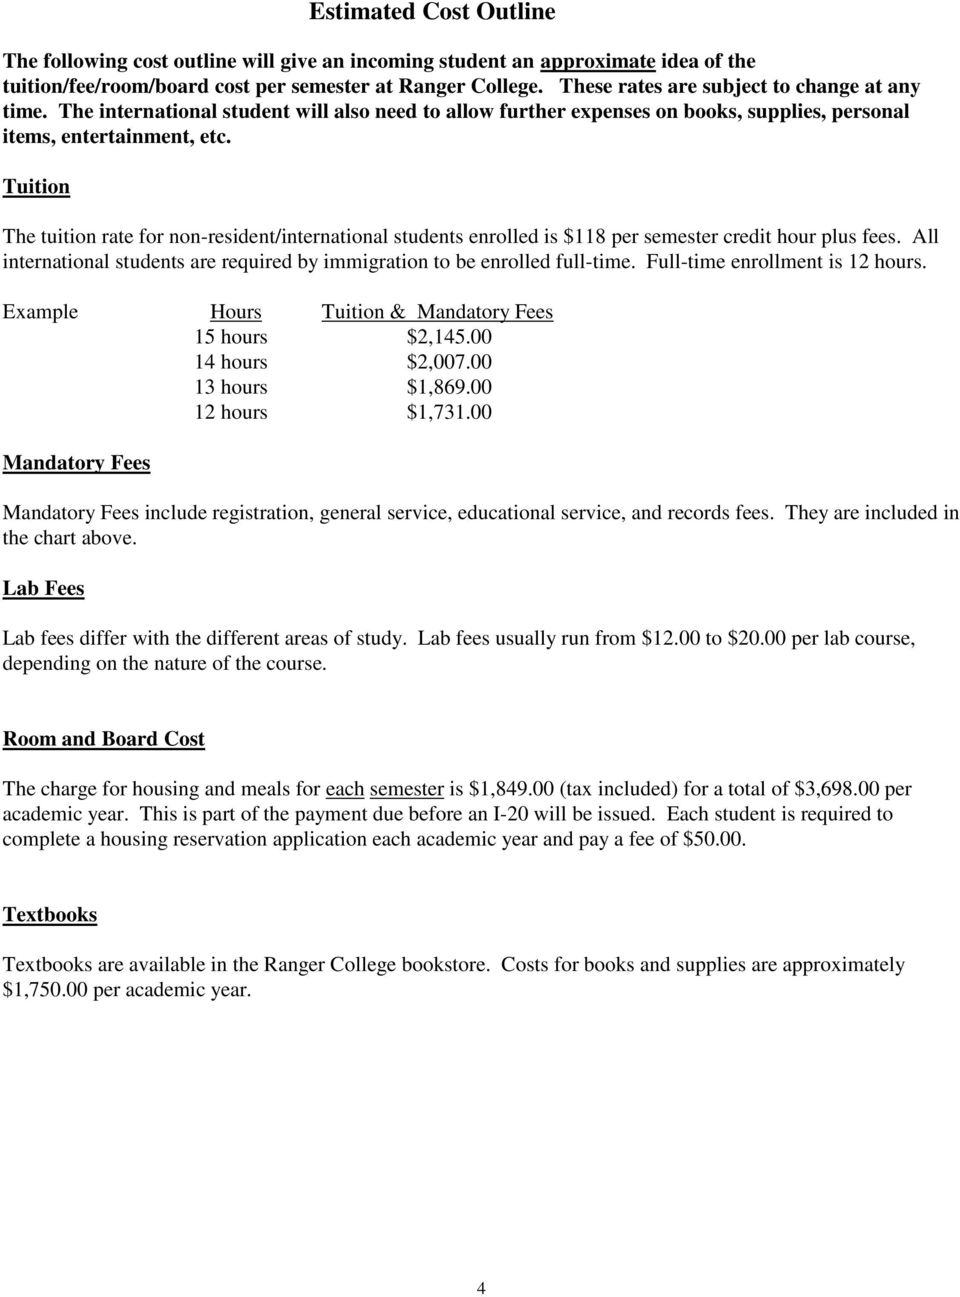 Tuition The tuition rate for non-resident/international students enrolled is $118 per semester credit hour plus fees. All international students are required by immigration to be enrolled full-time.